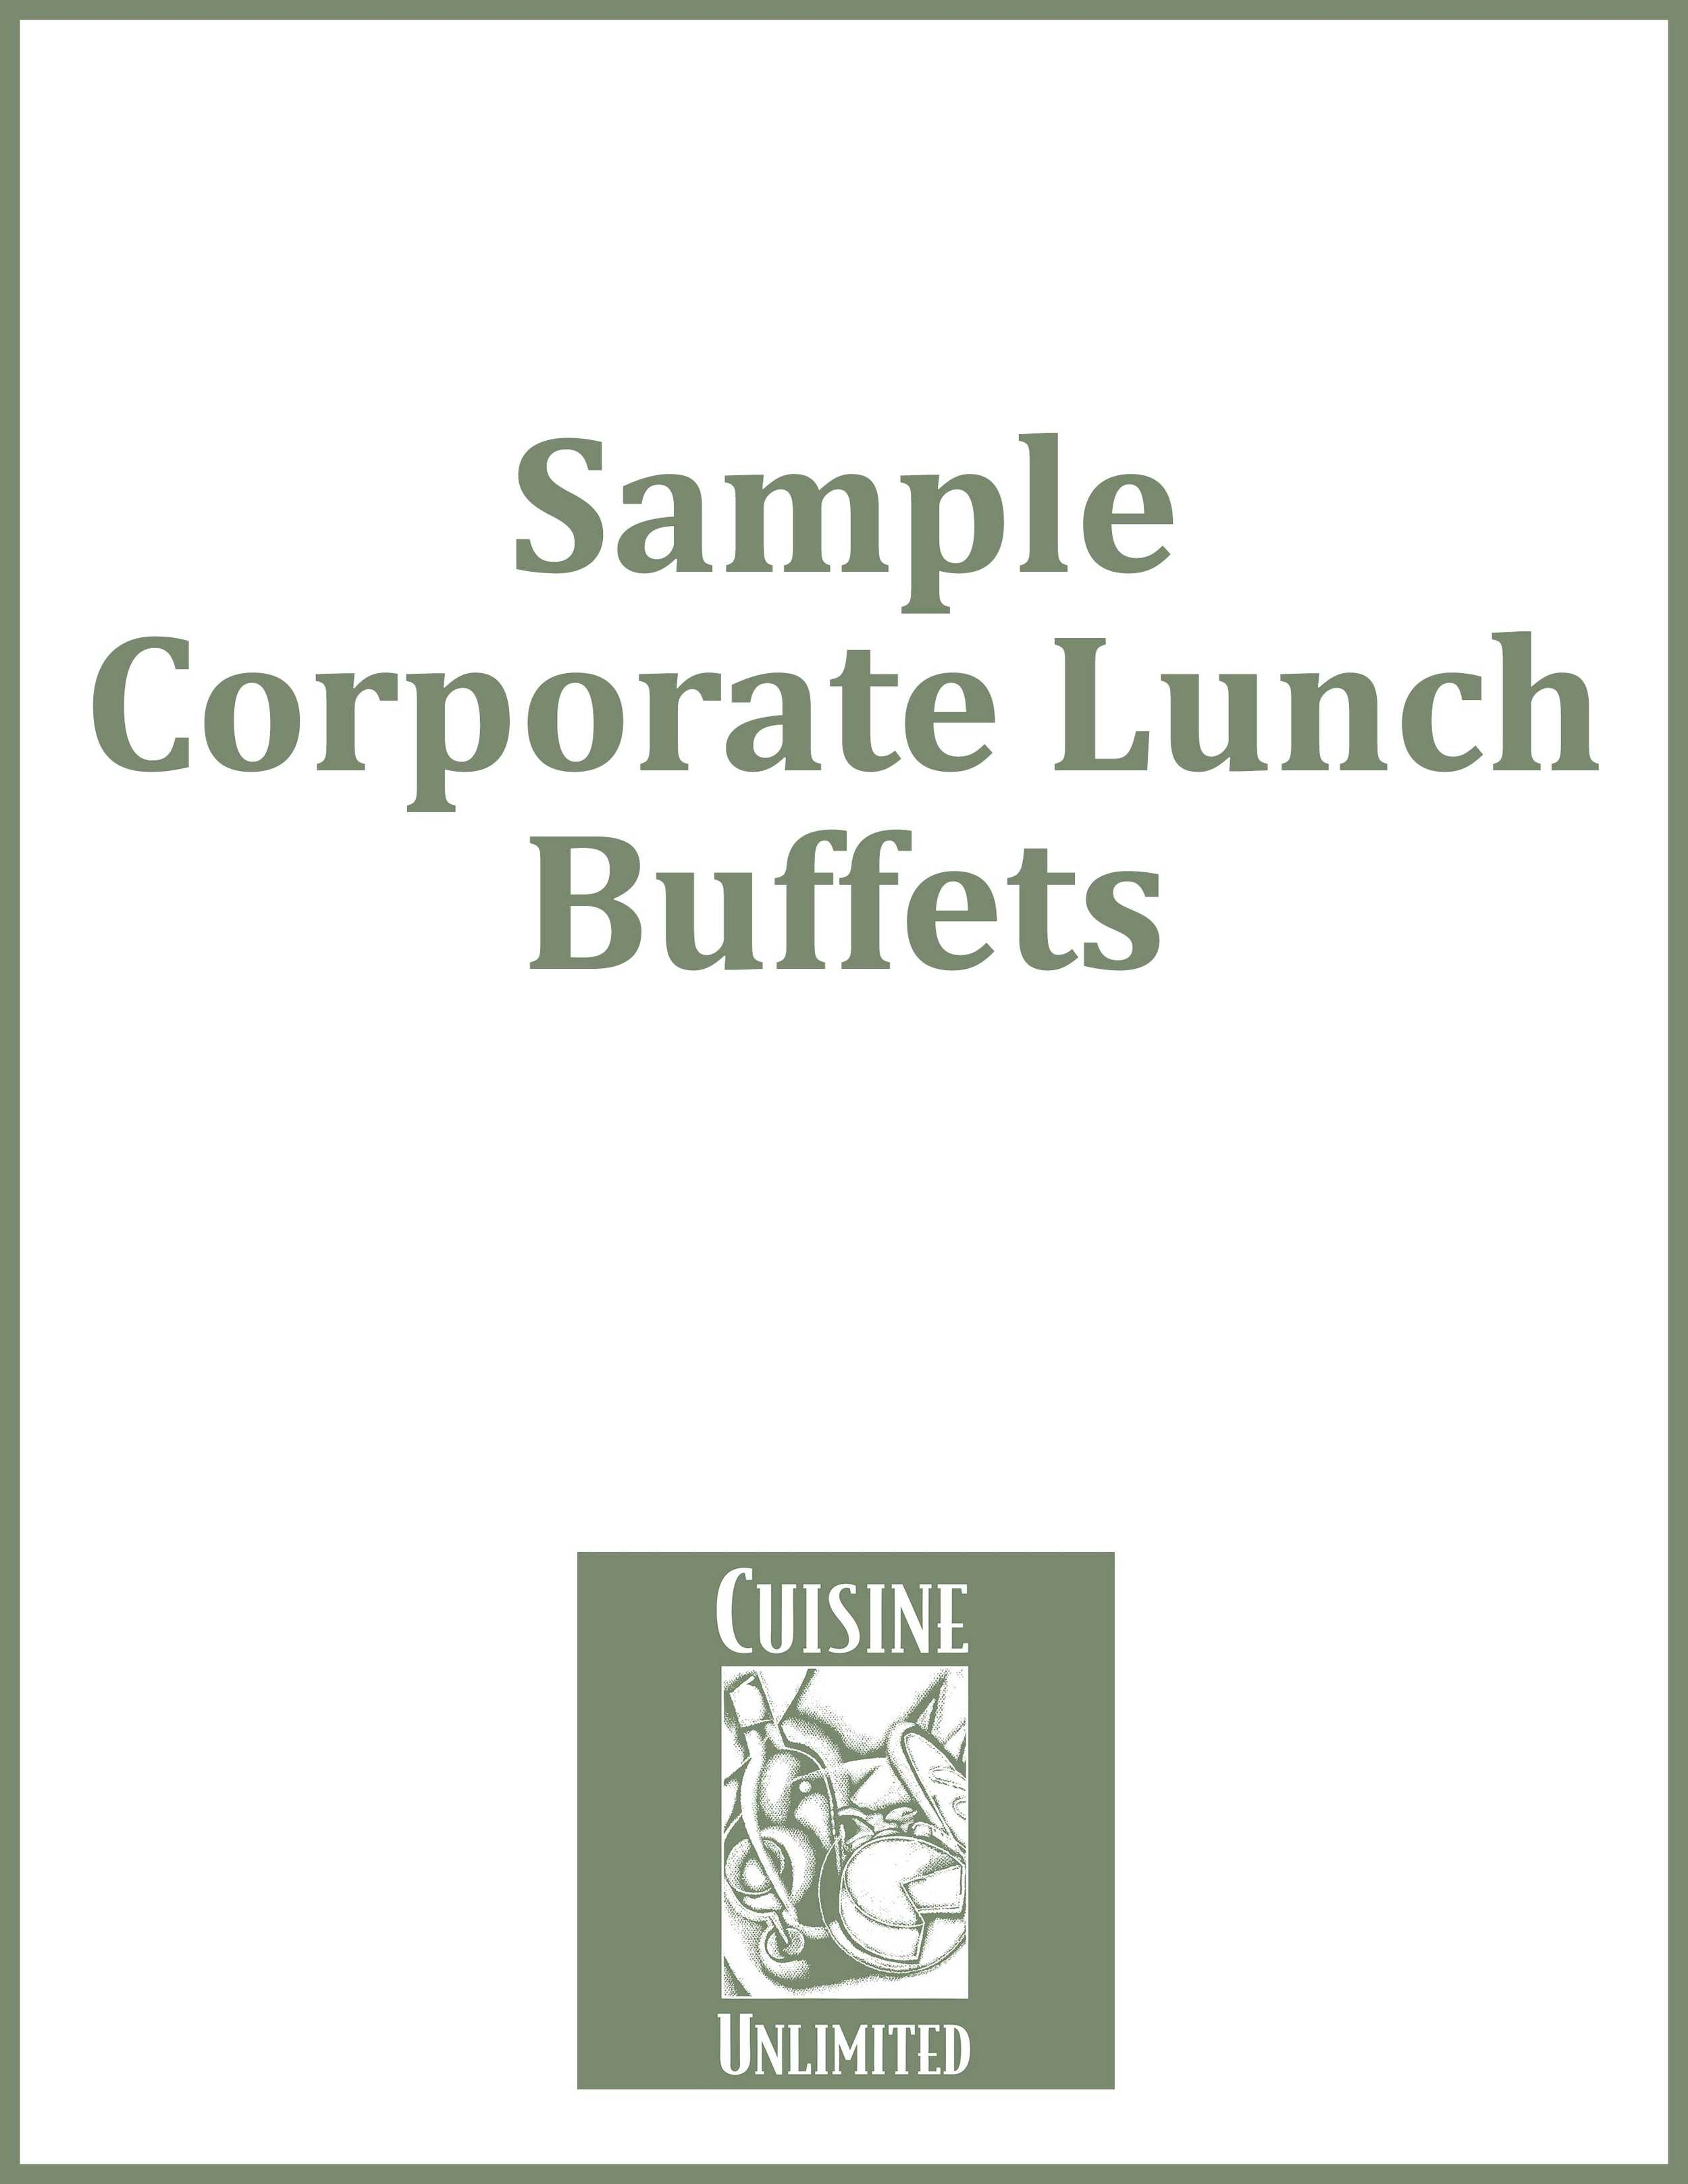 Sample Corporate Lunch Buffets